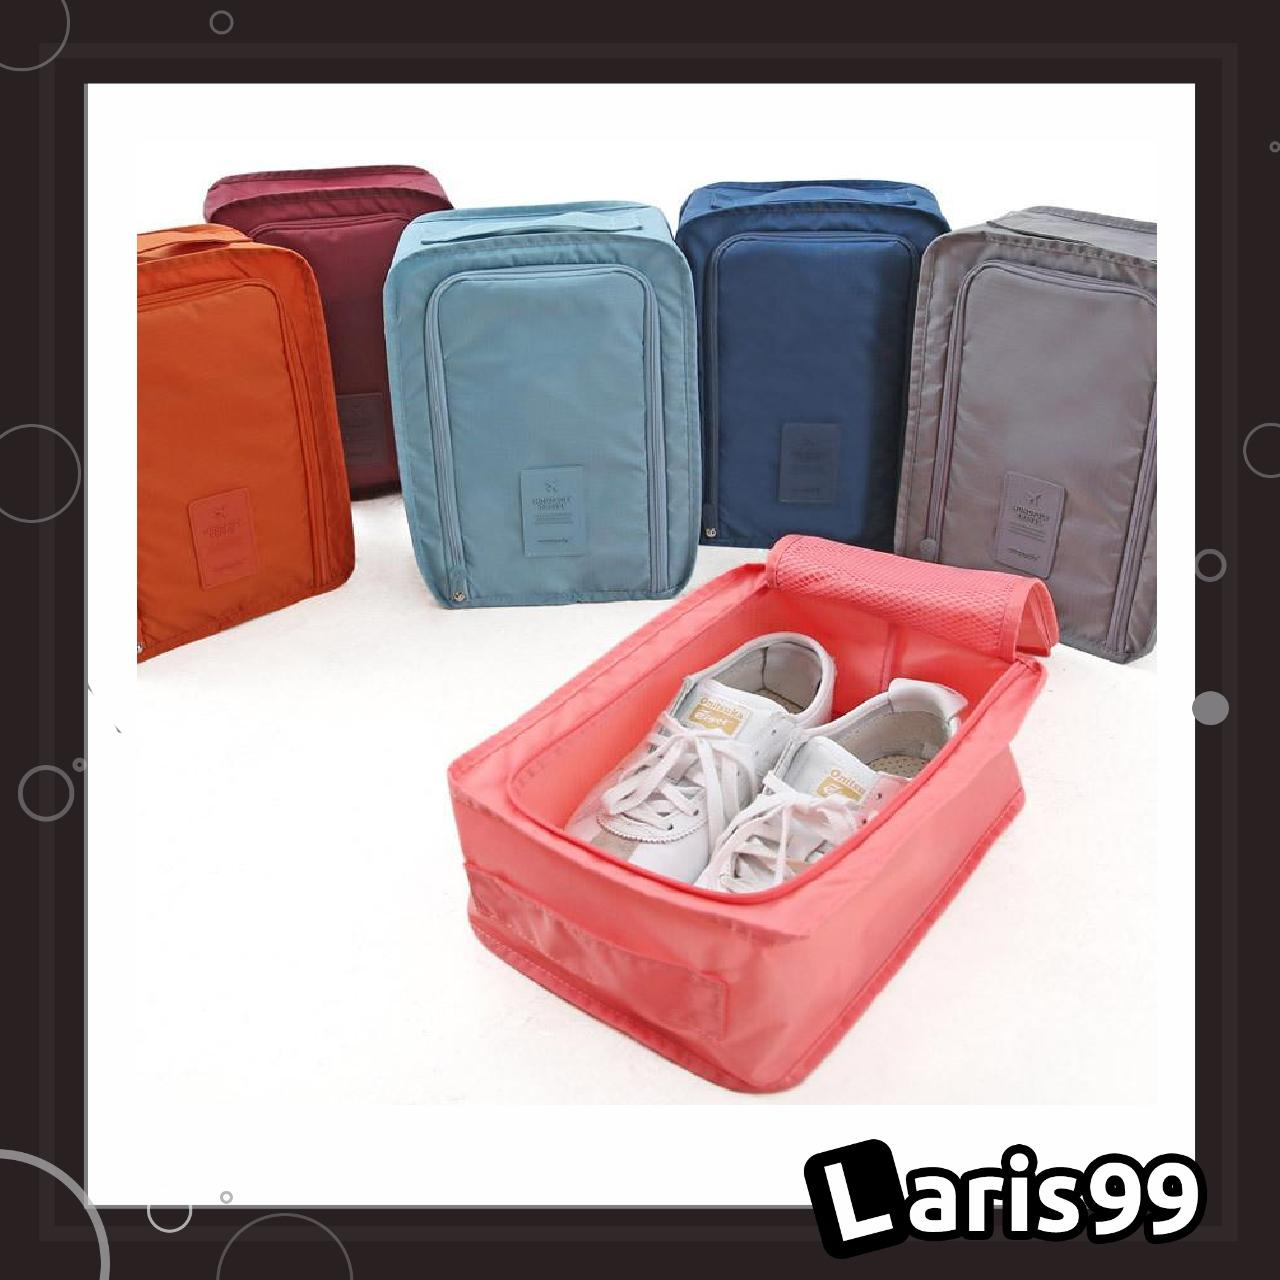 Laris99 Shp Tas Sepatu One Shoes / Organizer Pouch Shoes / Monopoly Shoes Pouch Travel By